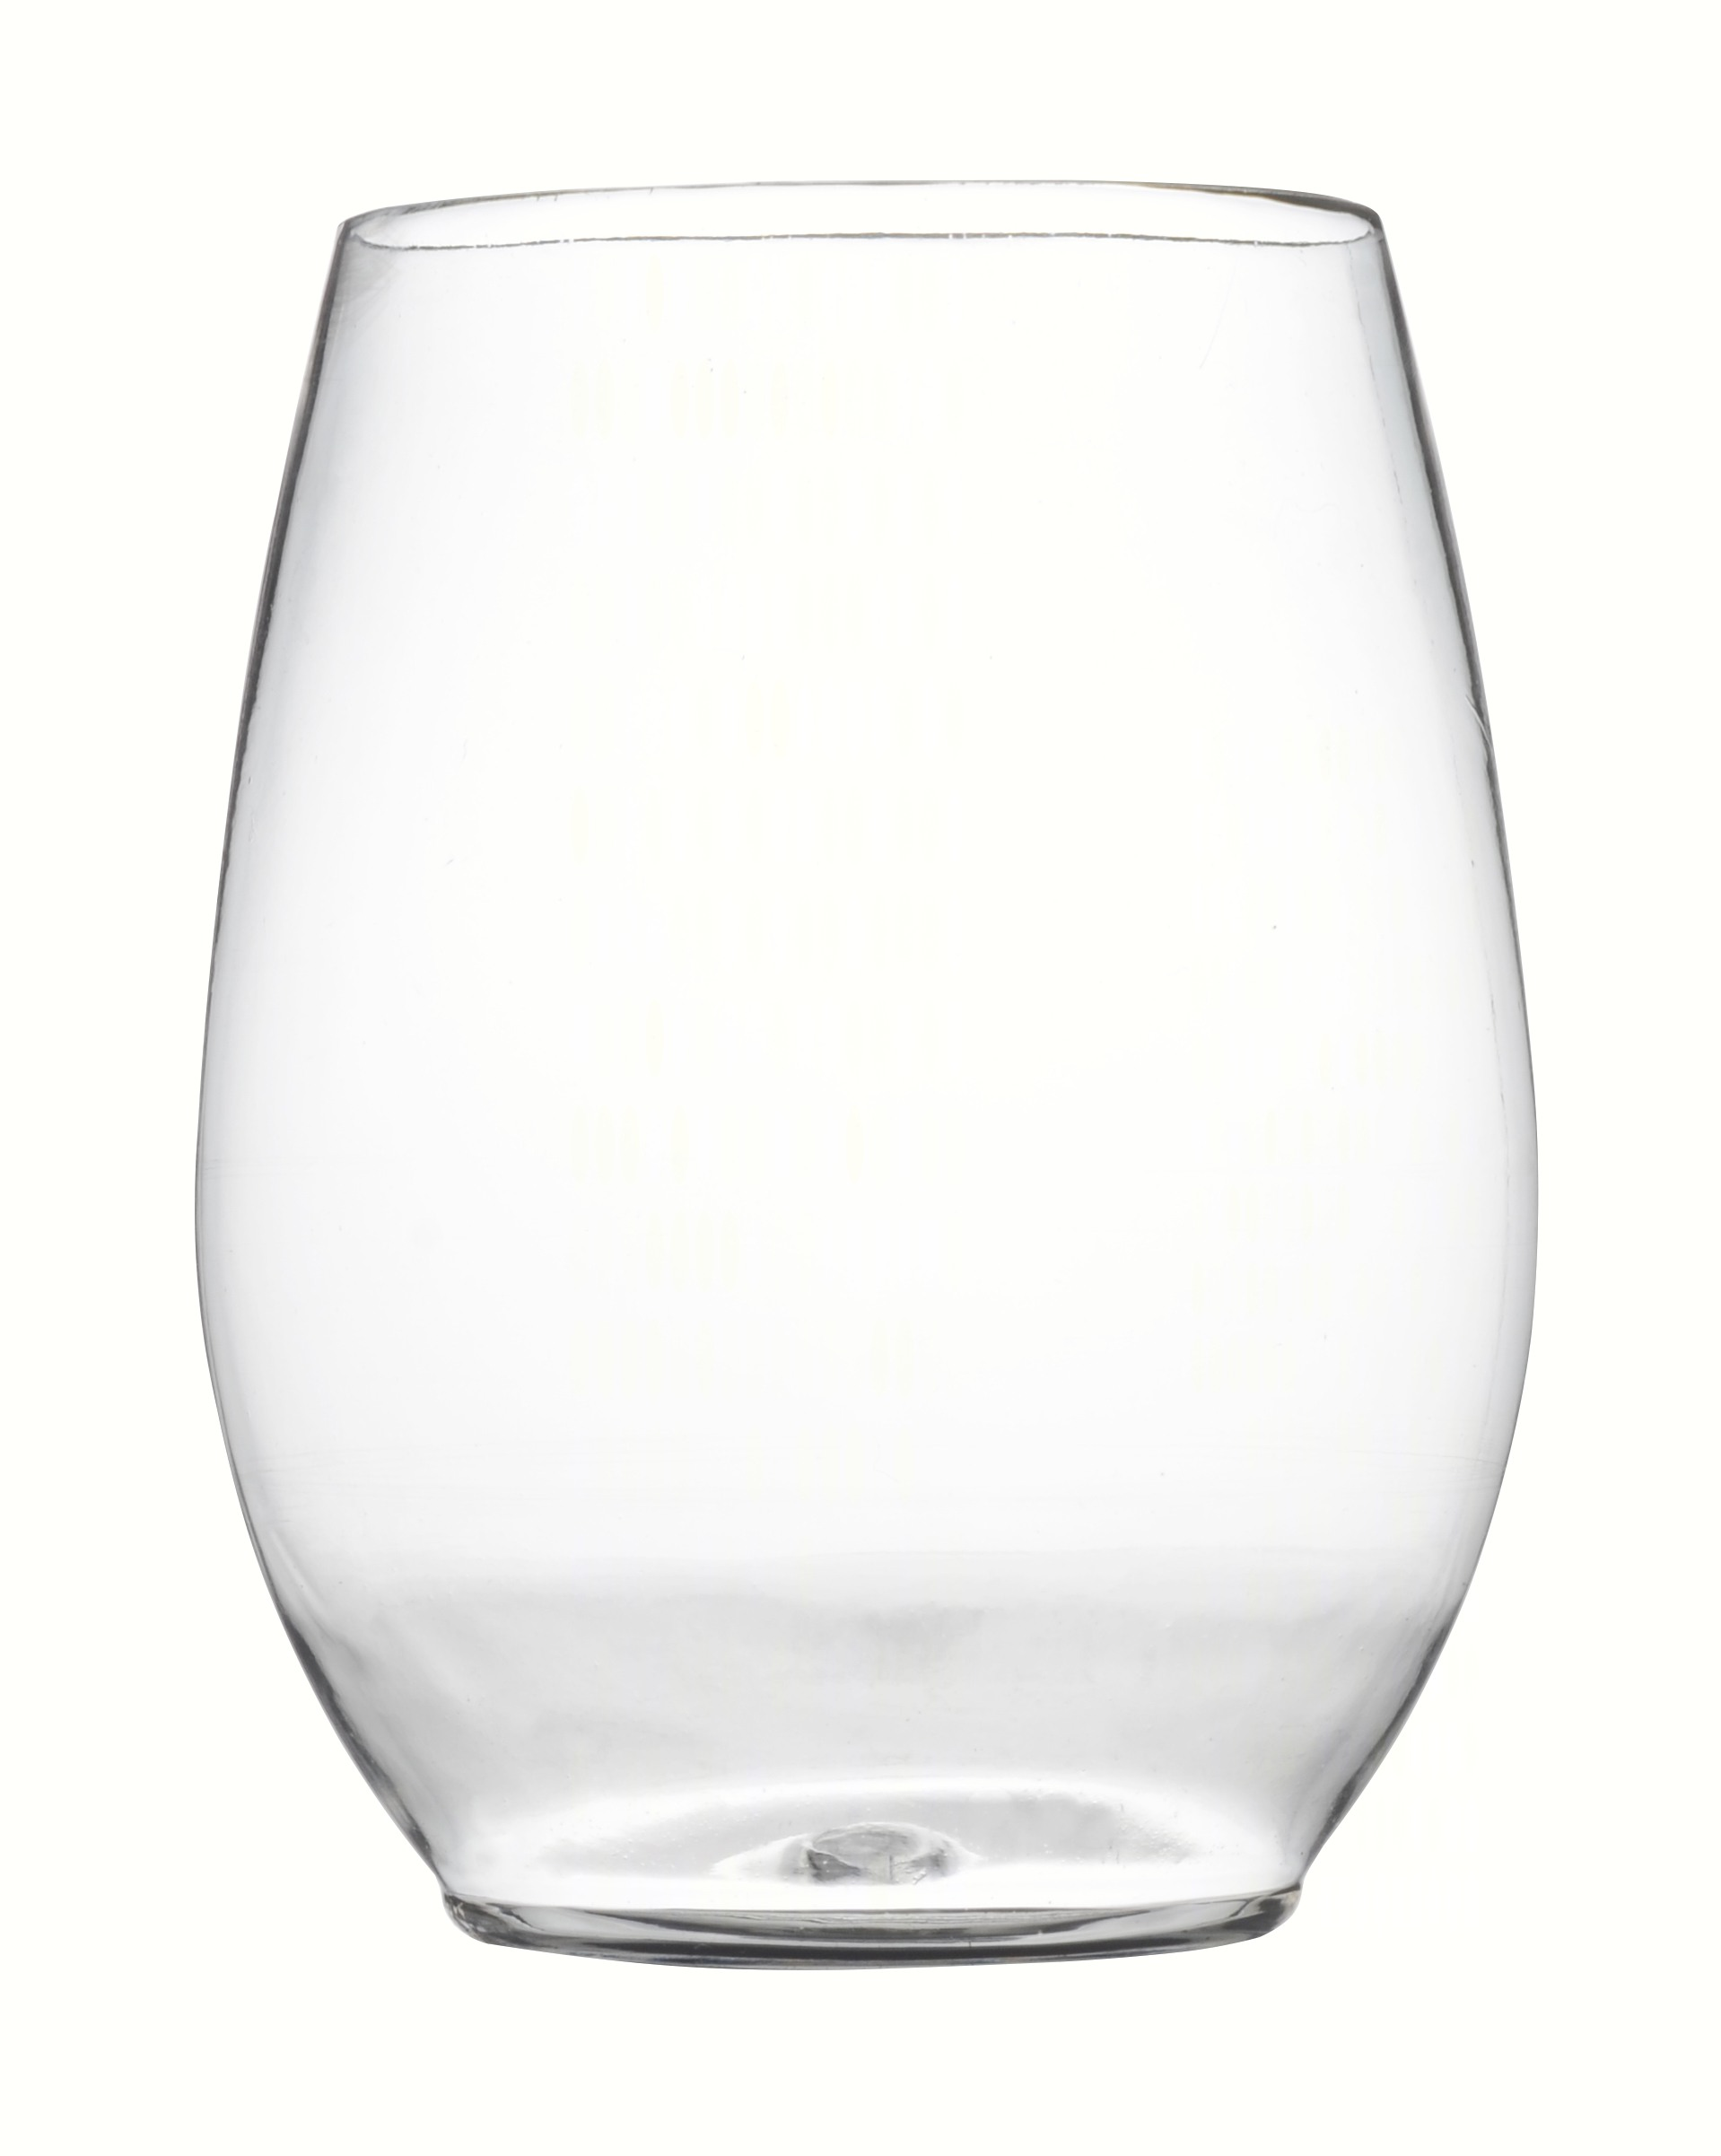 12 oz Stemless Goblet - Clear